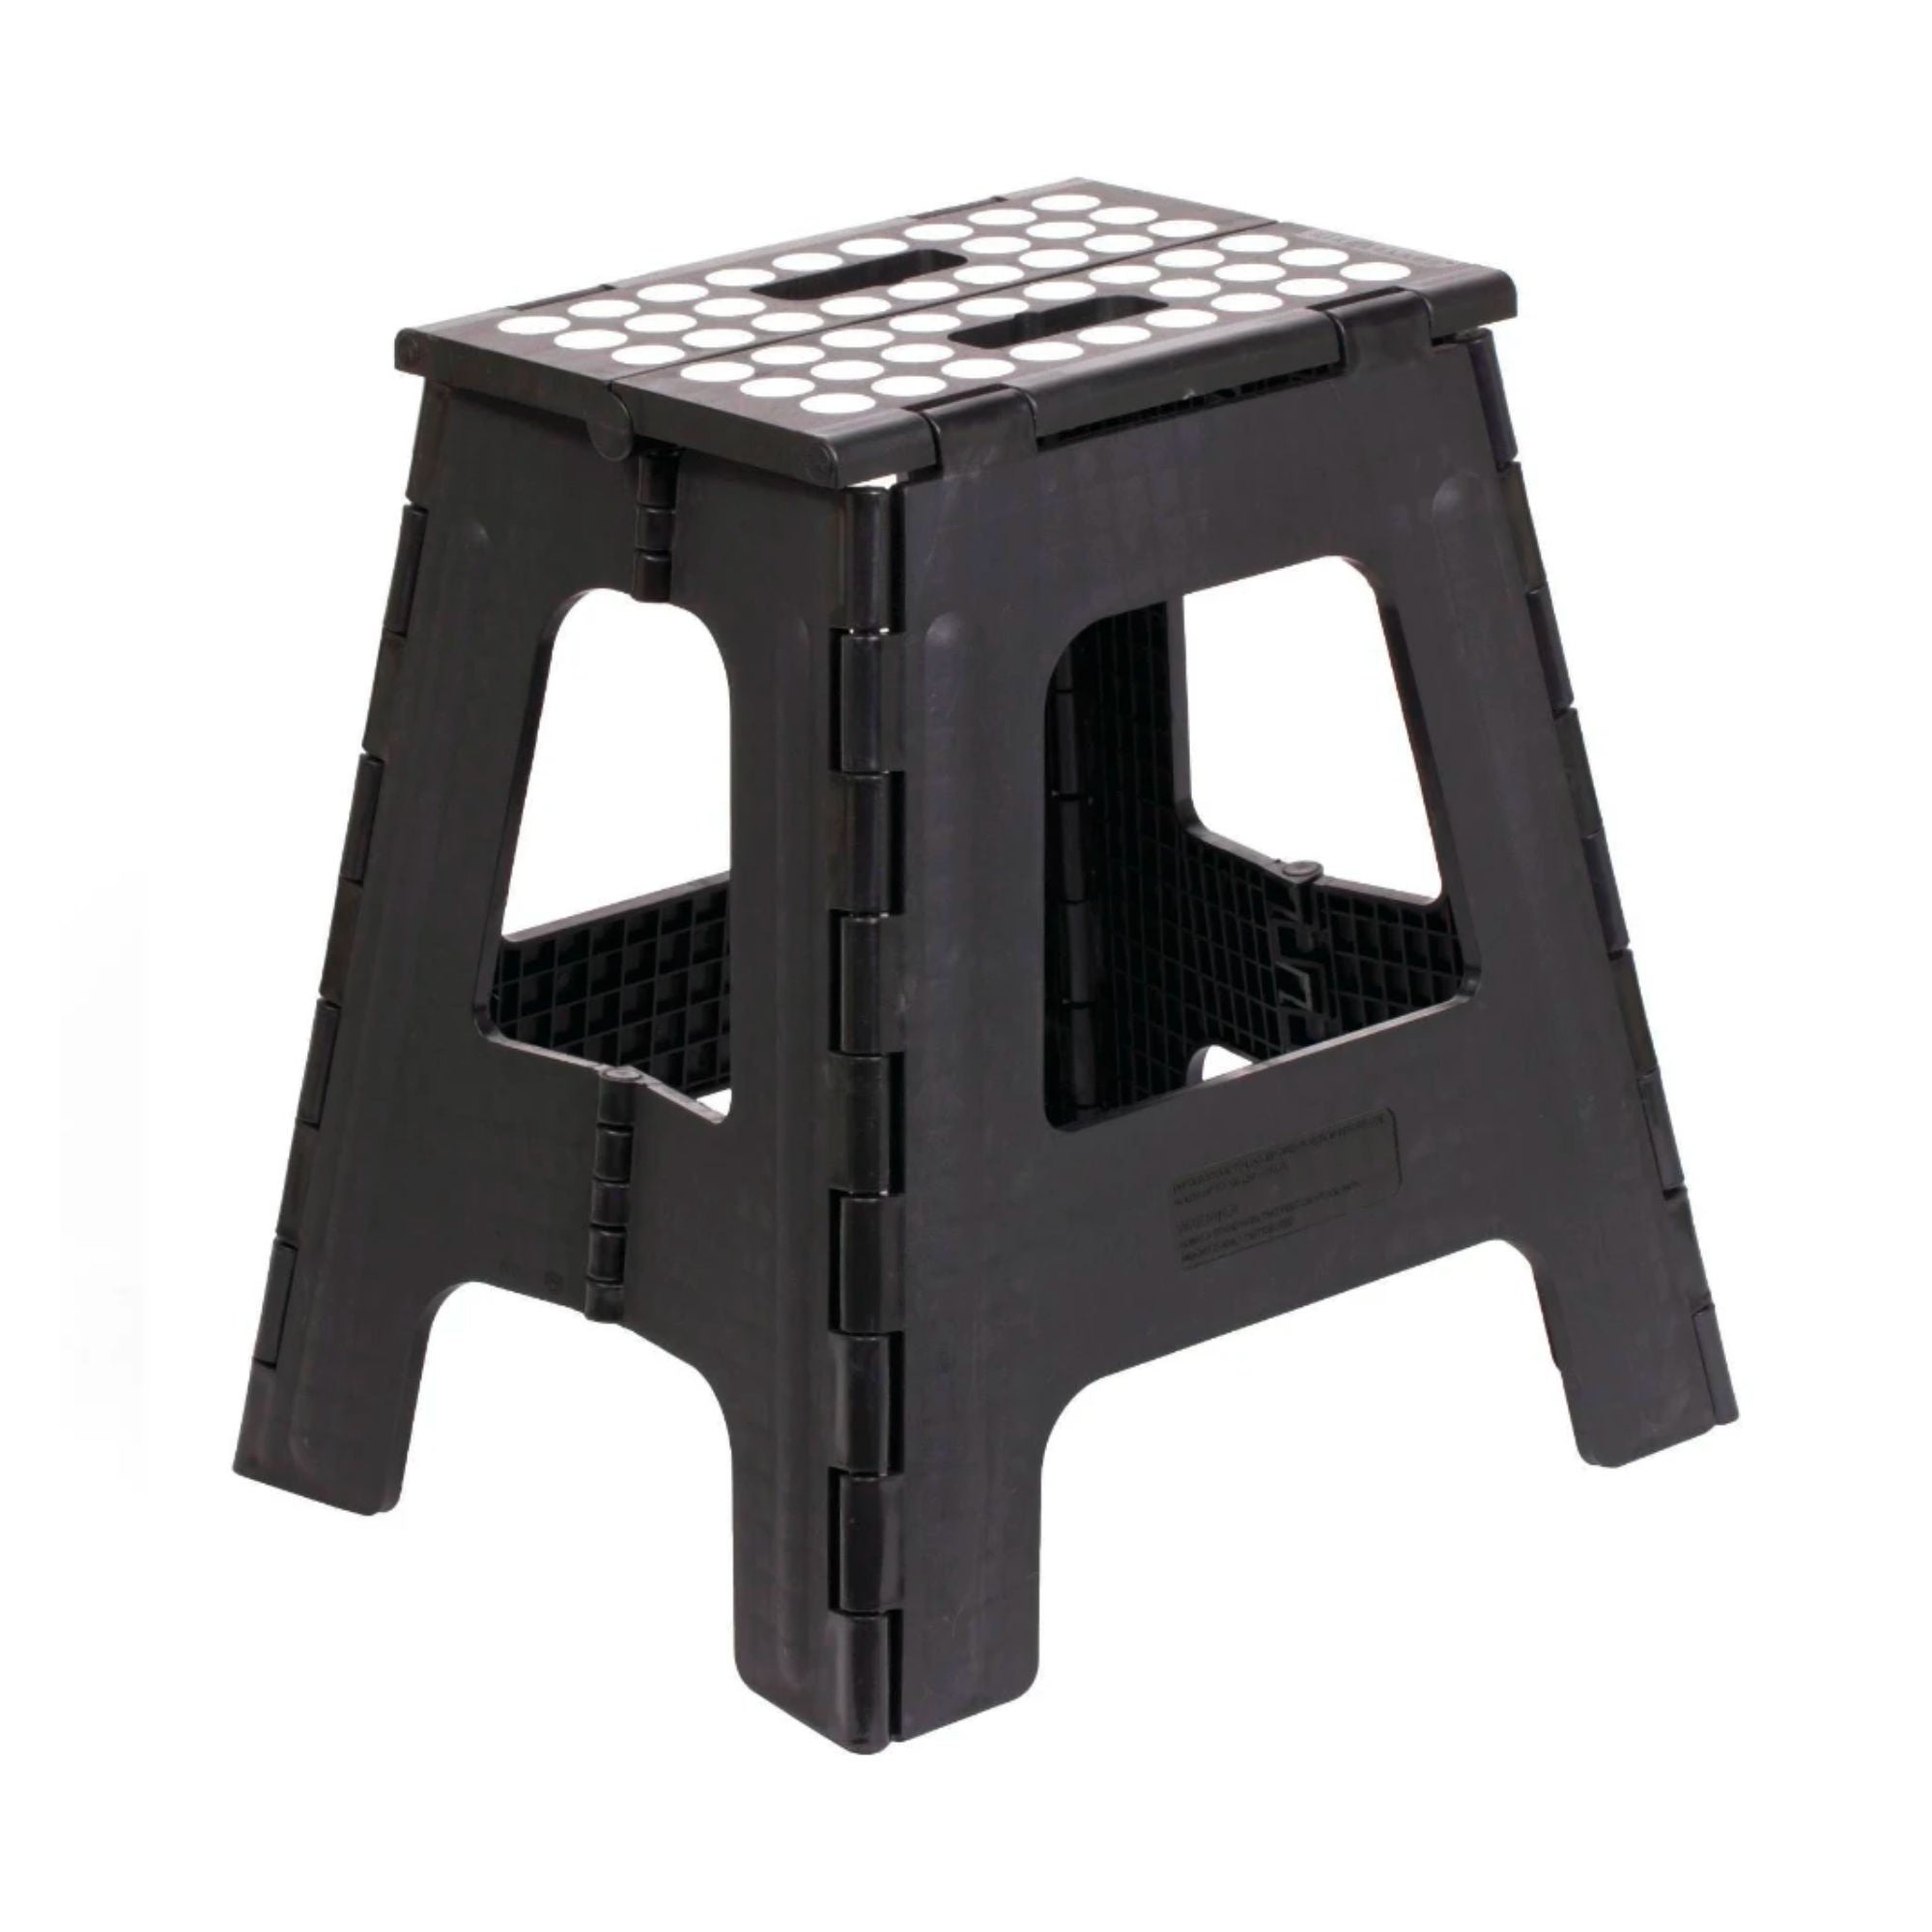 Kikkerland Rhino II Folding Step Stool 40cm , Black